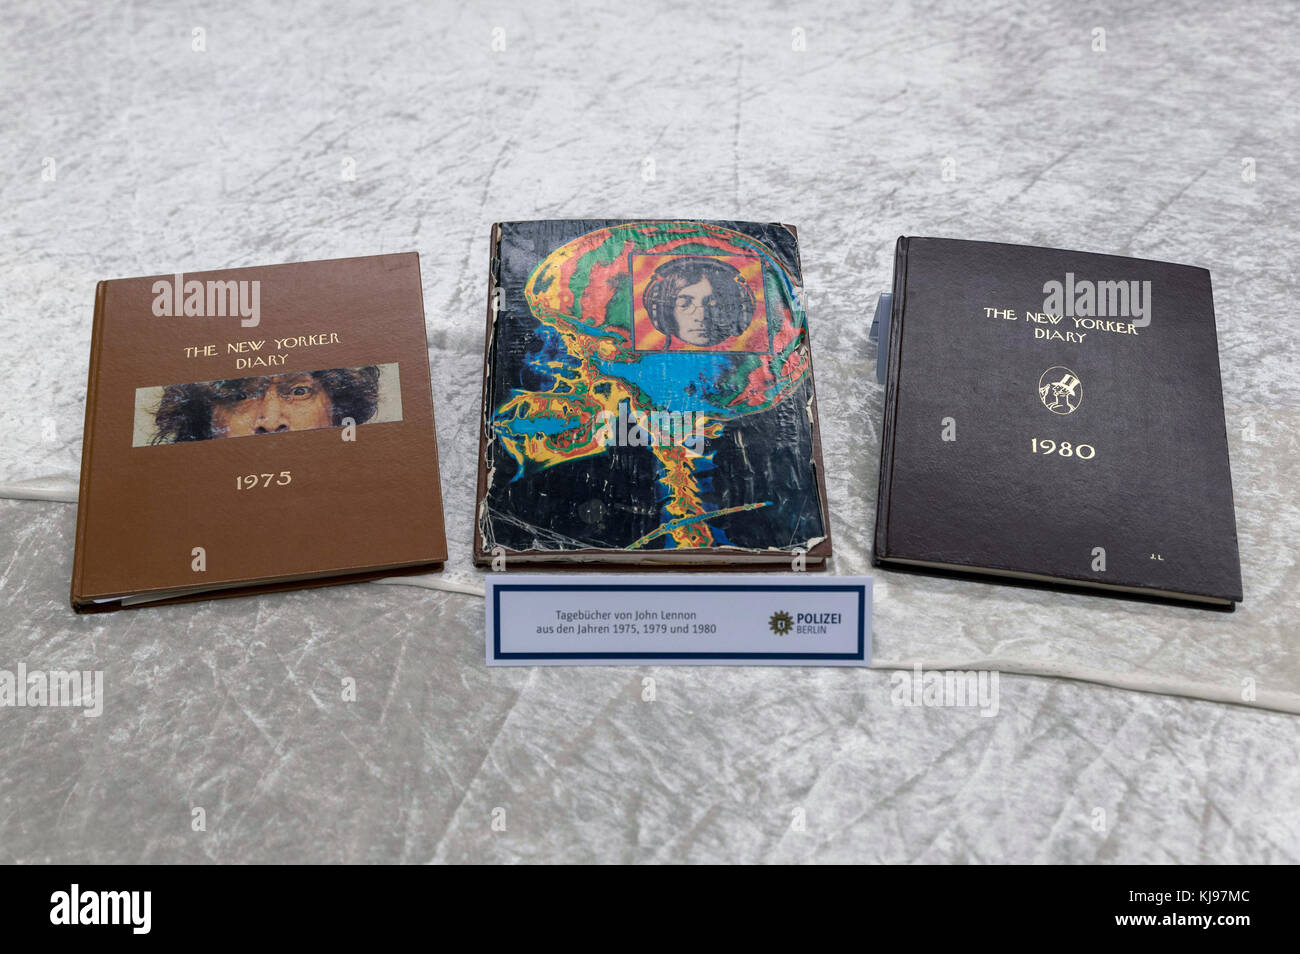 Diaries, pieces of the stolen belongings of The Beatles' John Lennon who was killed in New York on 1980, are - Stock Image